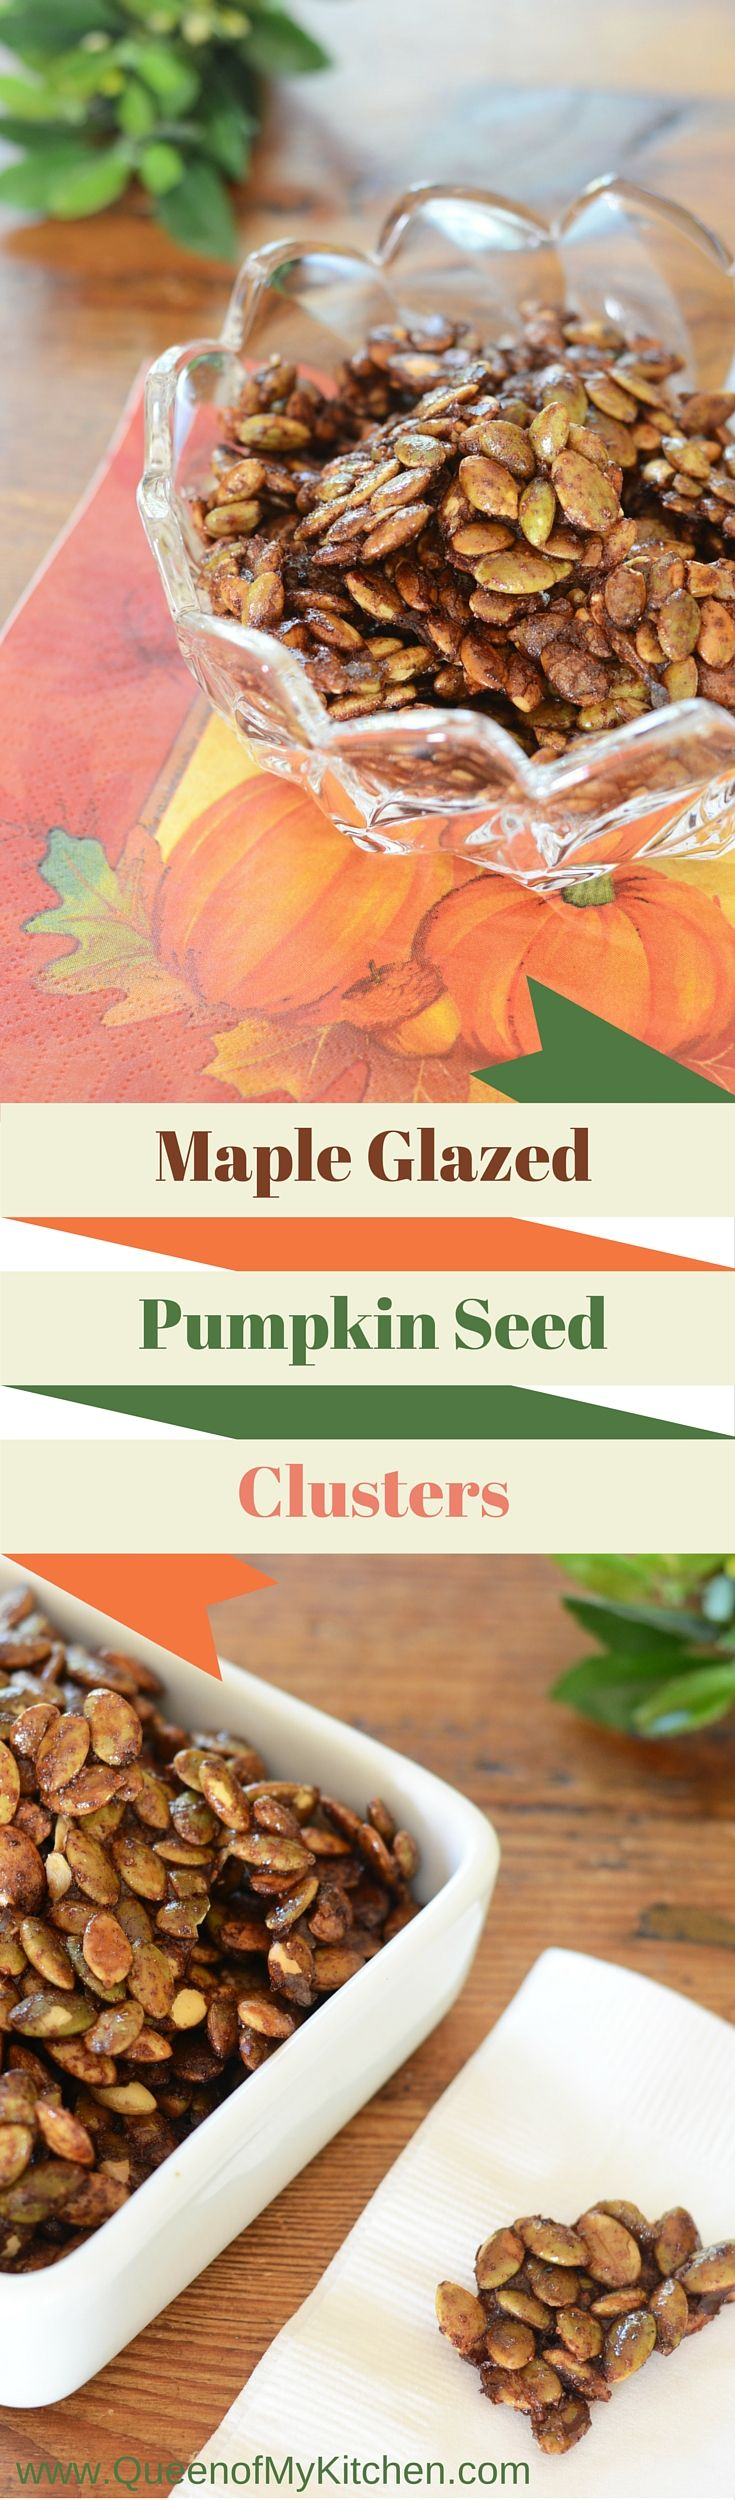 Maple Glazed Pumpkin Seed Clusters – pumpkin seeds roasted in coconut oil, coated with fall scented spices, and glazed with maple syrup.  These delicious little clusters are the perfect healthy snack.  Great in salads and yogurt, and as a garnish for soup and desserts.